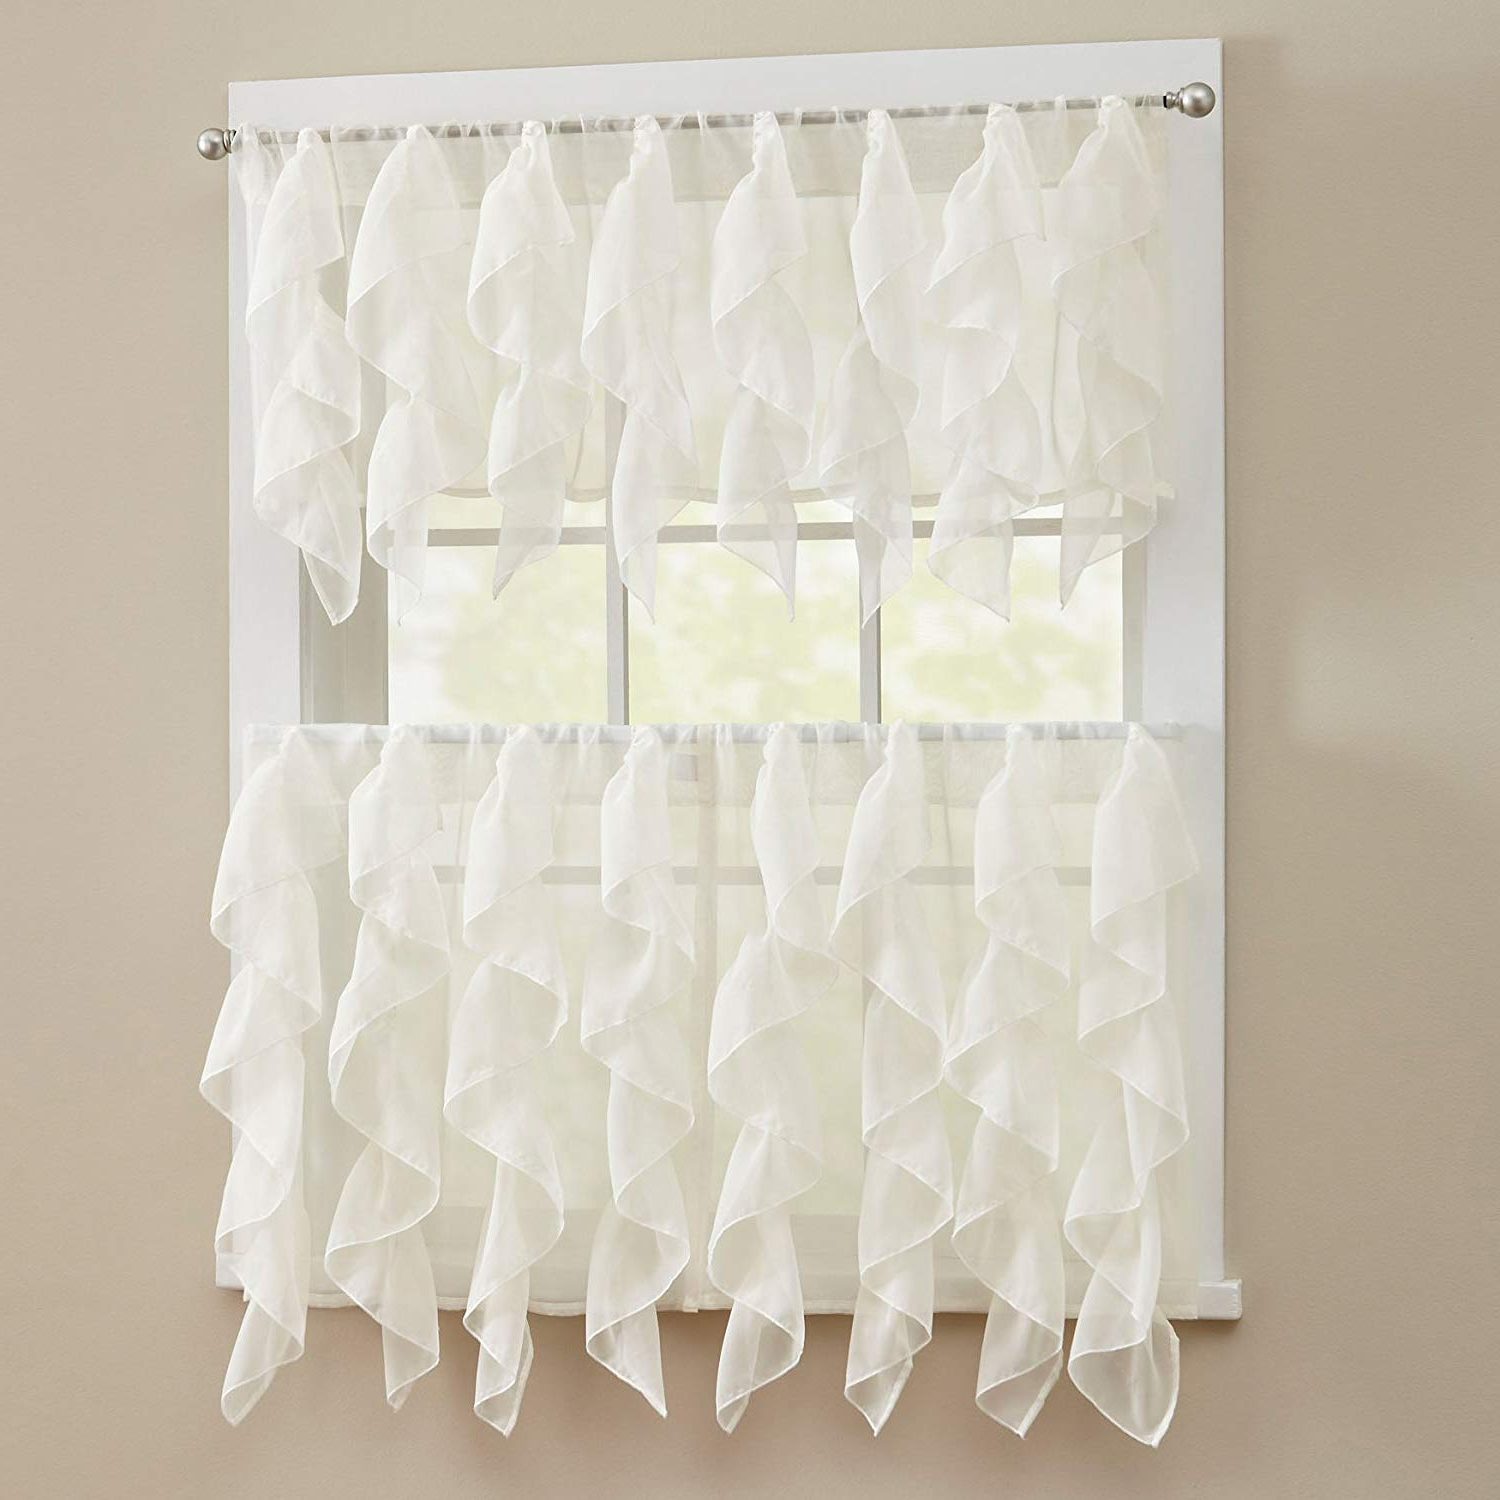 "Latest Silver Vertical Ruffled Waterfall Valance And Curtain Tiers In Sweet Home Collection 3 Piece Kitchen Curtain Set Sheet Vertical Cascading Waterfall Ruffle Includes Valance & Choice Of 24"" Or 36"" Teir Pair, Tier, (View 14 of 20)"